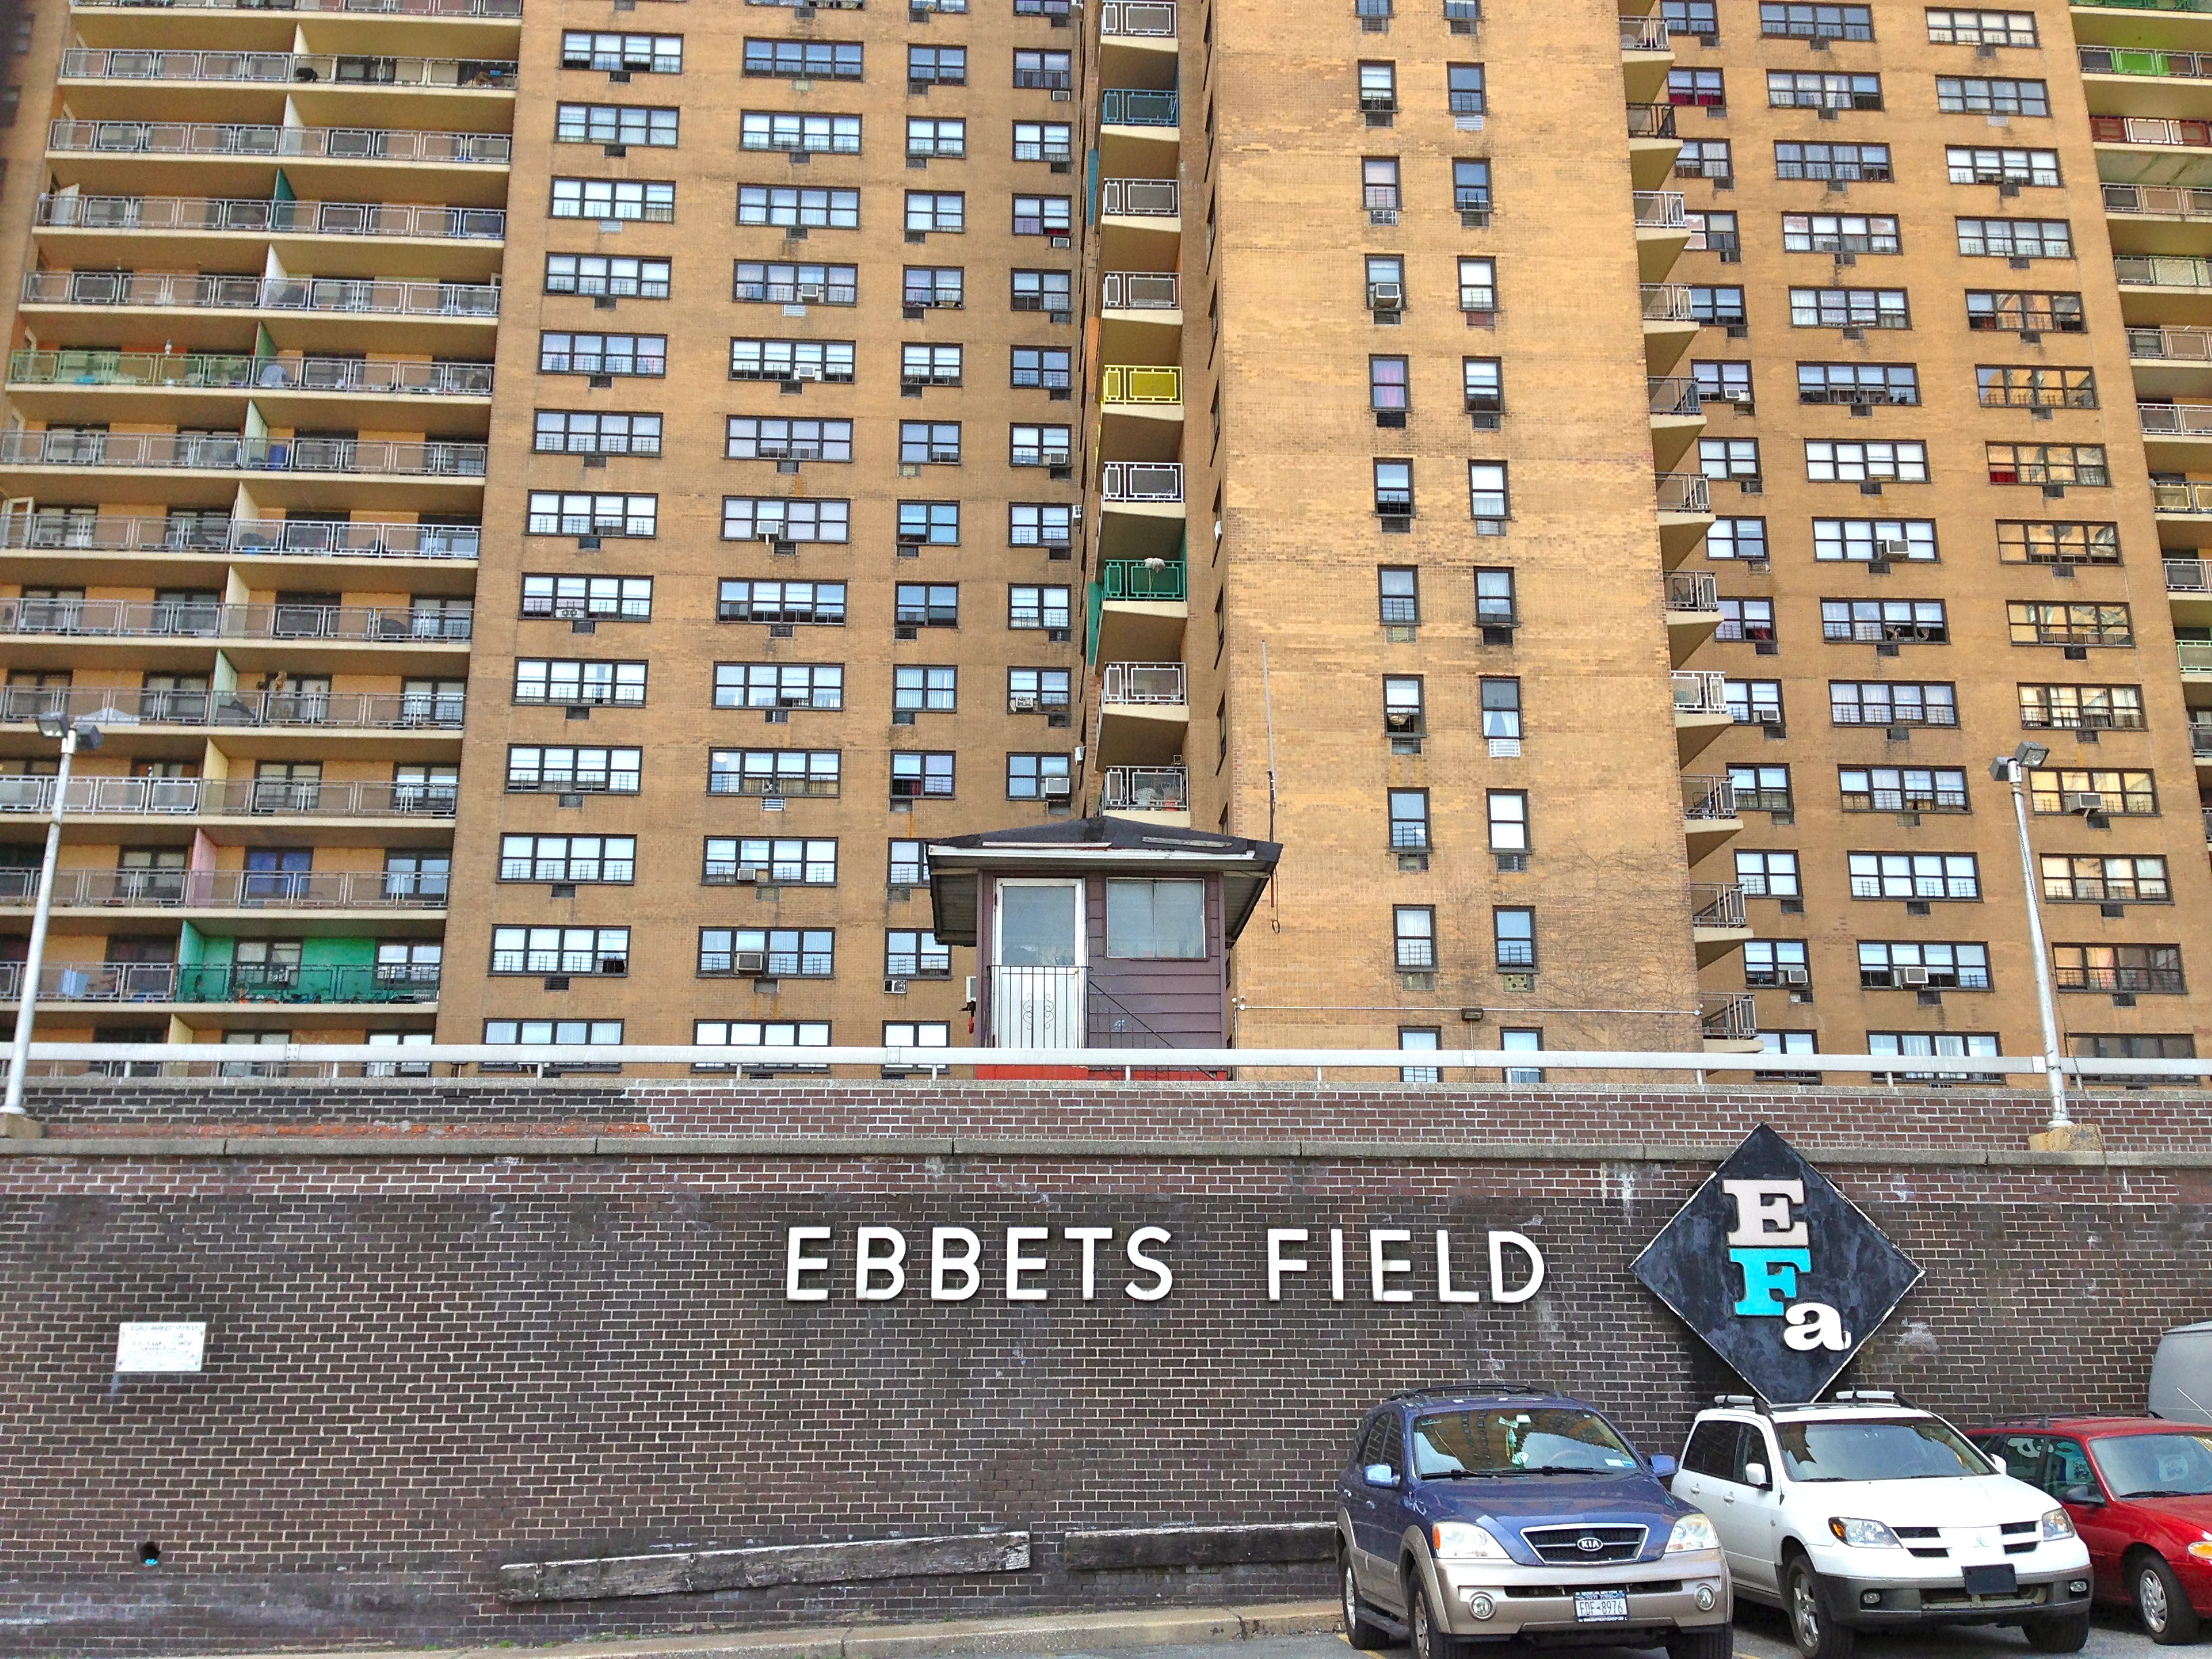 ebbets field 54 reviews of ebbets field fun little frat house turned resto cool vibe and friendly staff we had the baked ravioli to start, then a couple of pizzassuper good and i had a first here wine in a can i had the rose and it was great,.